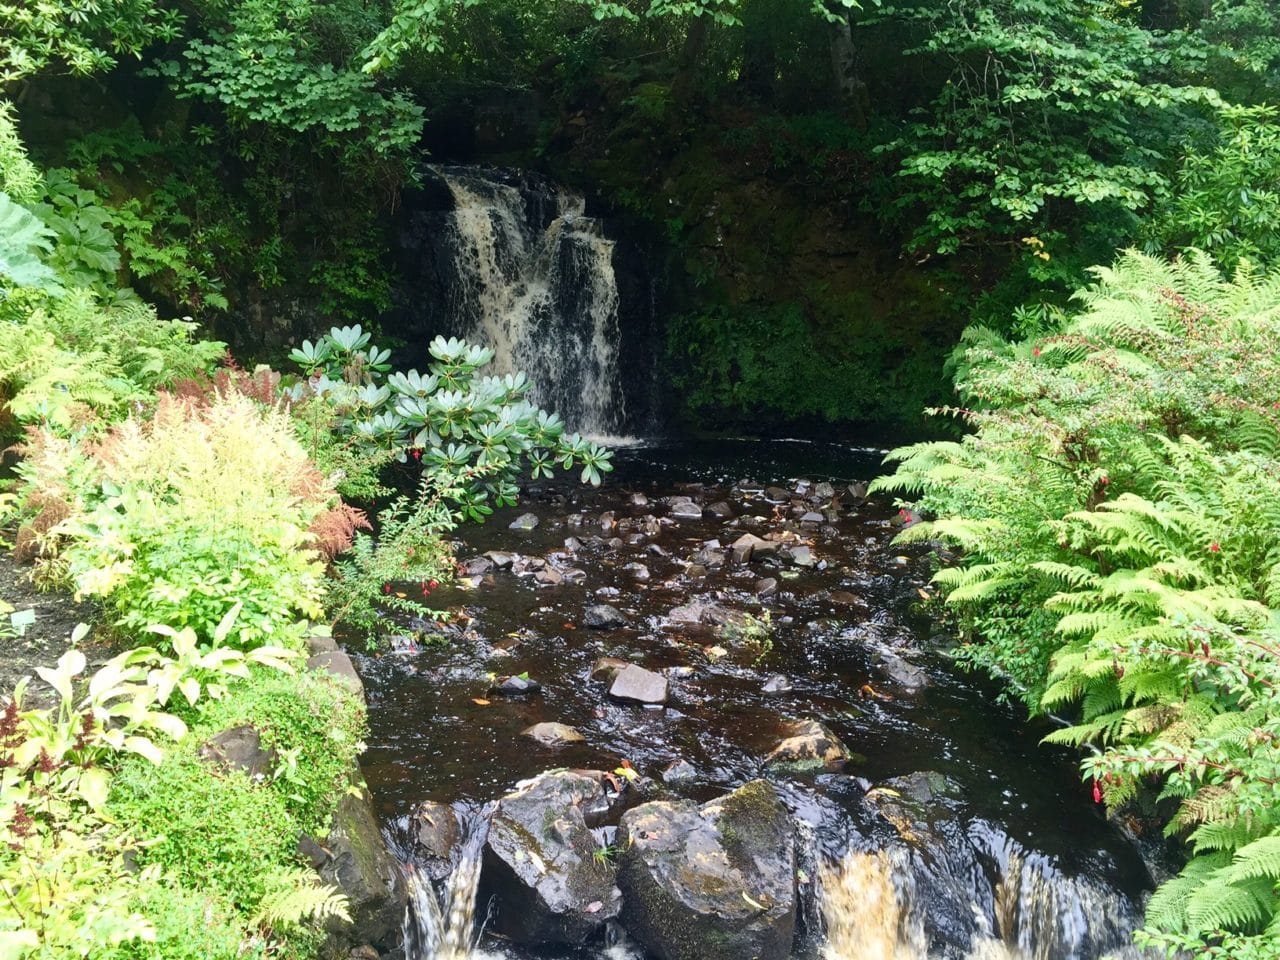 One of the waterfalls in the water garden at Dunvegan Castle.